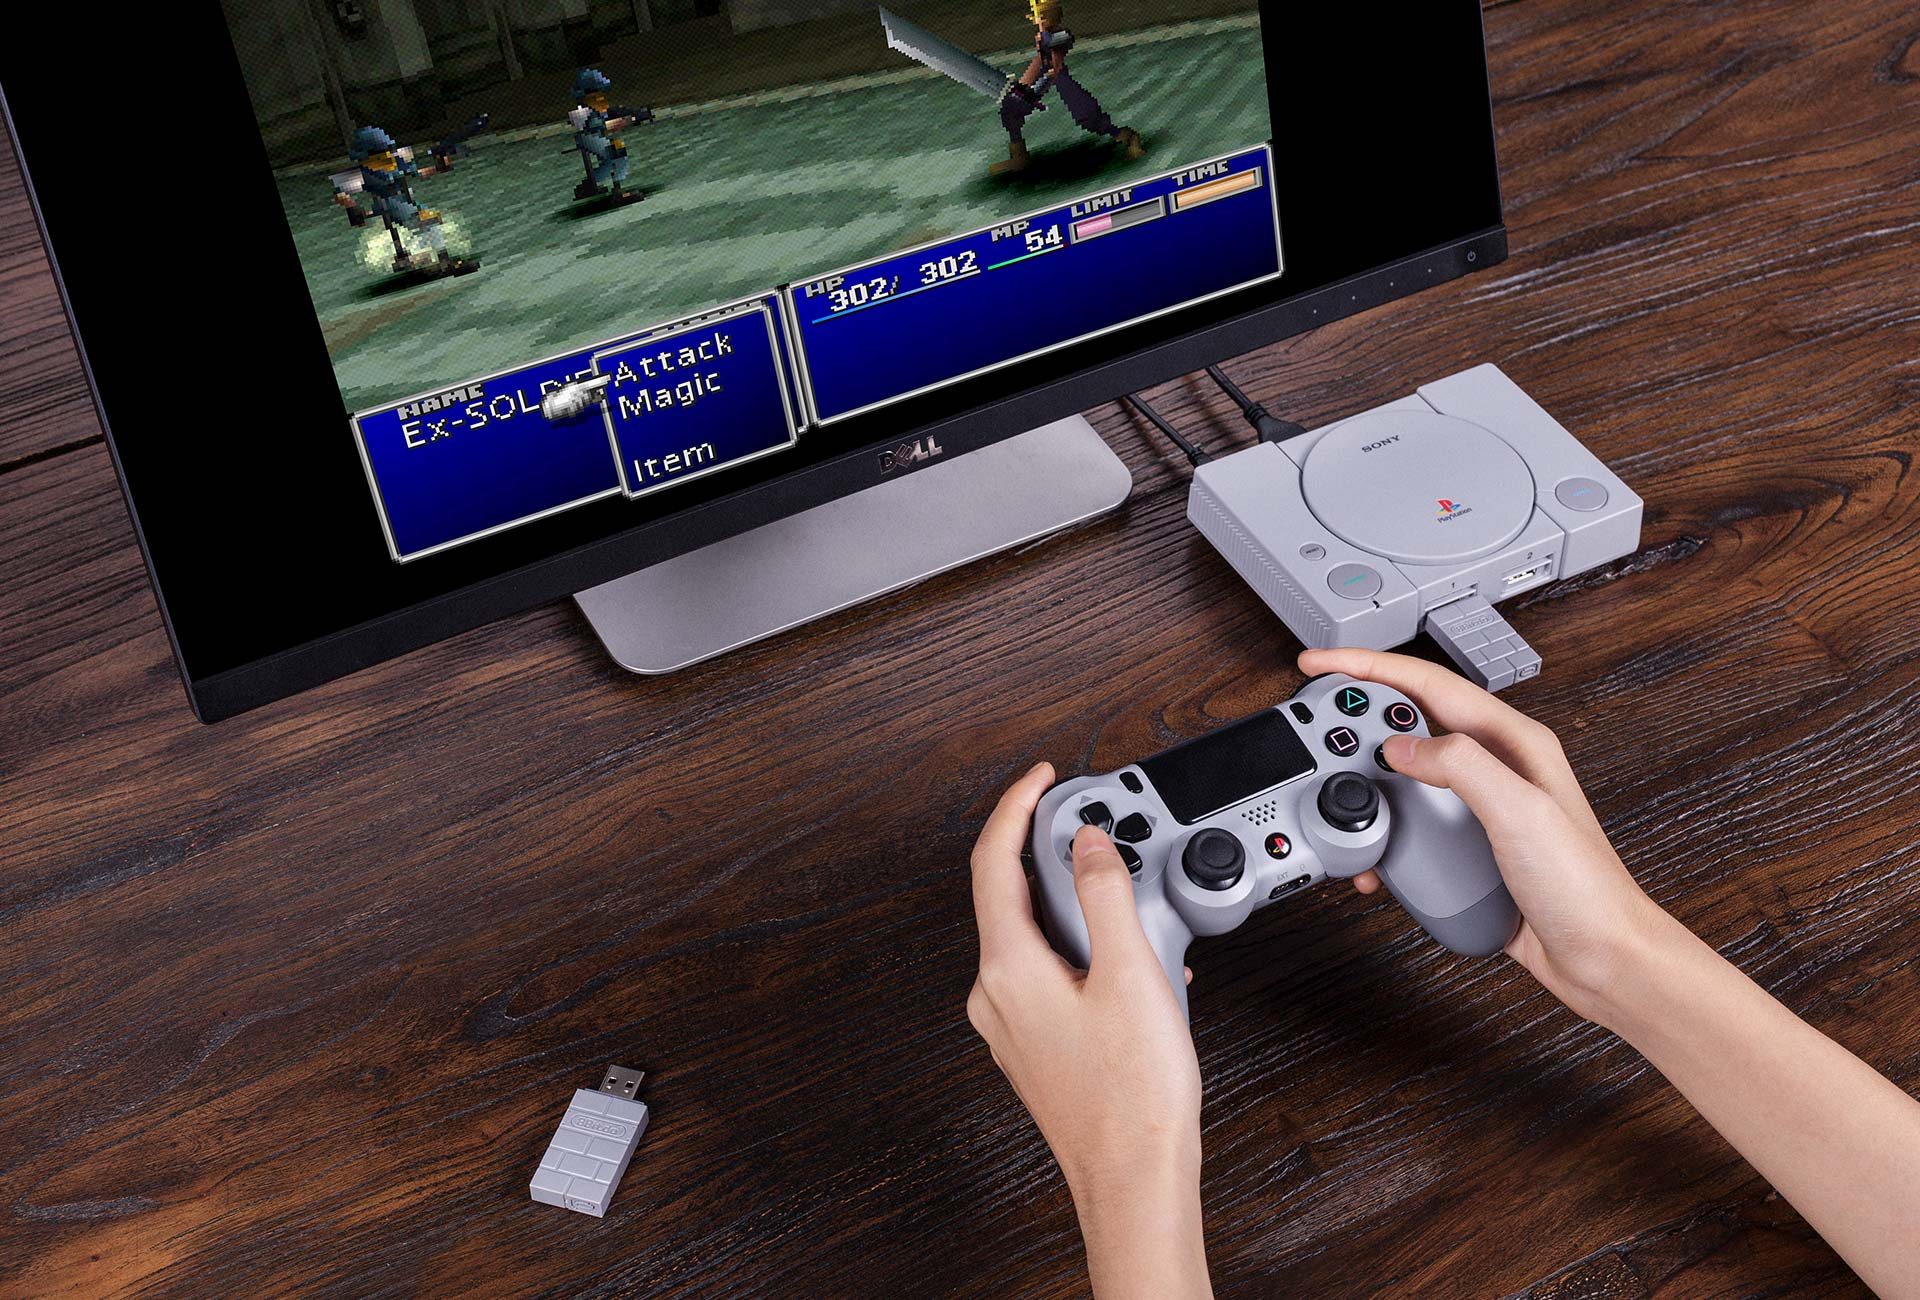 8bitdo playstation classic - Adapter PS3/PS4 to PS2 Controller otrzymał wsparcie dla PlayStation Classic